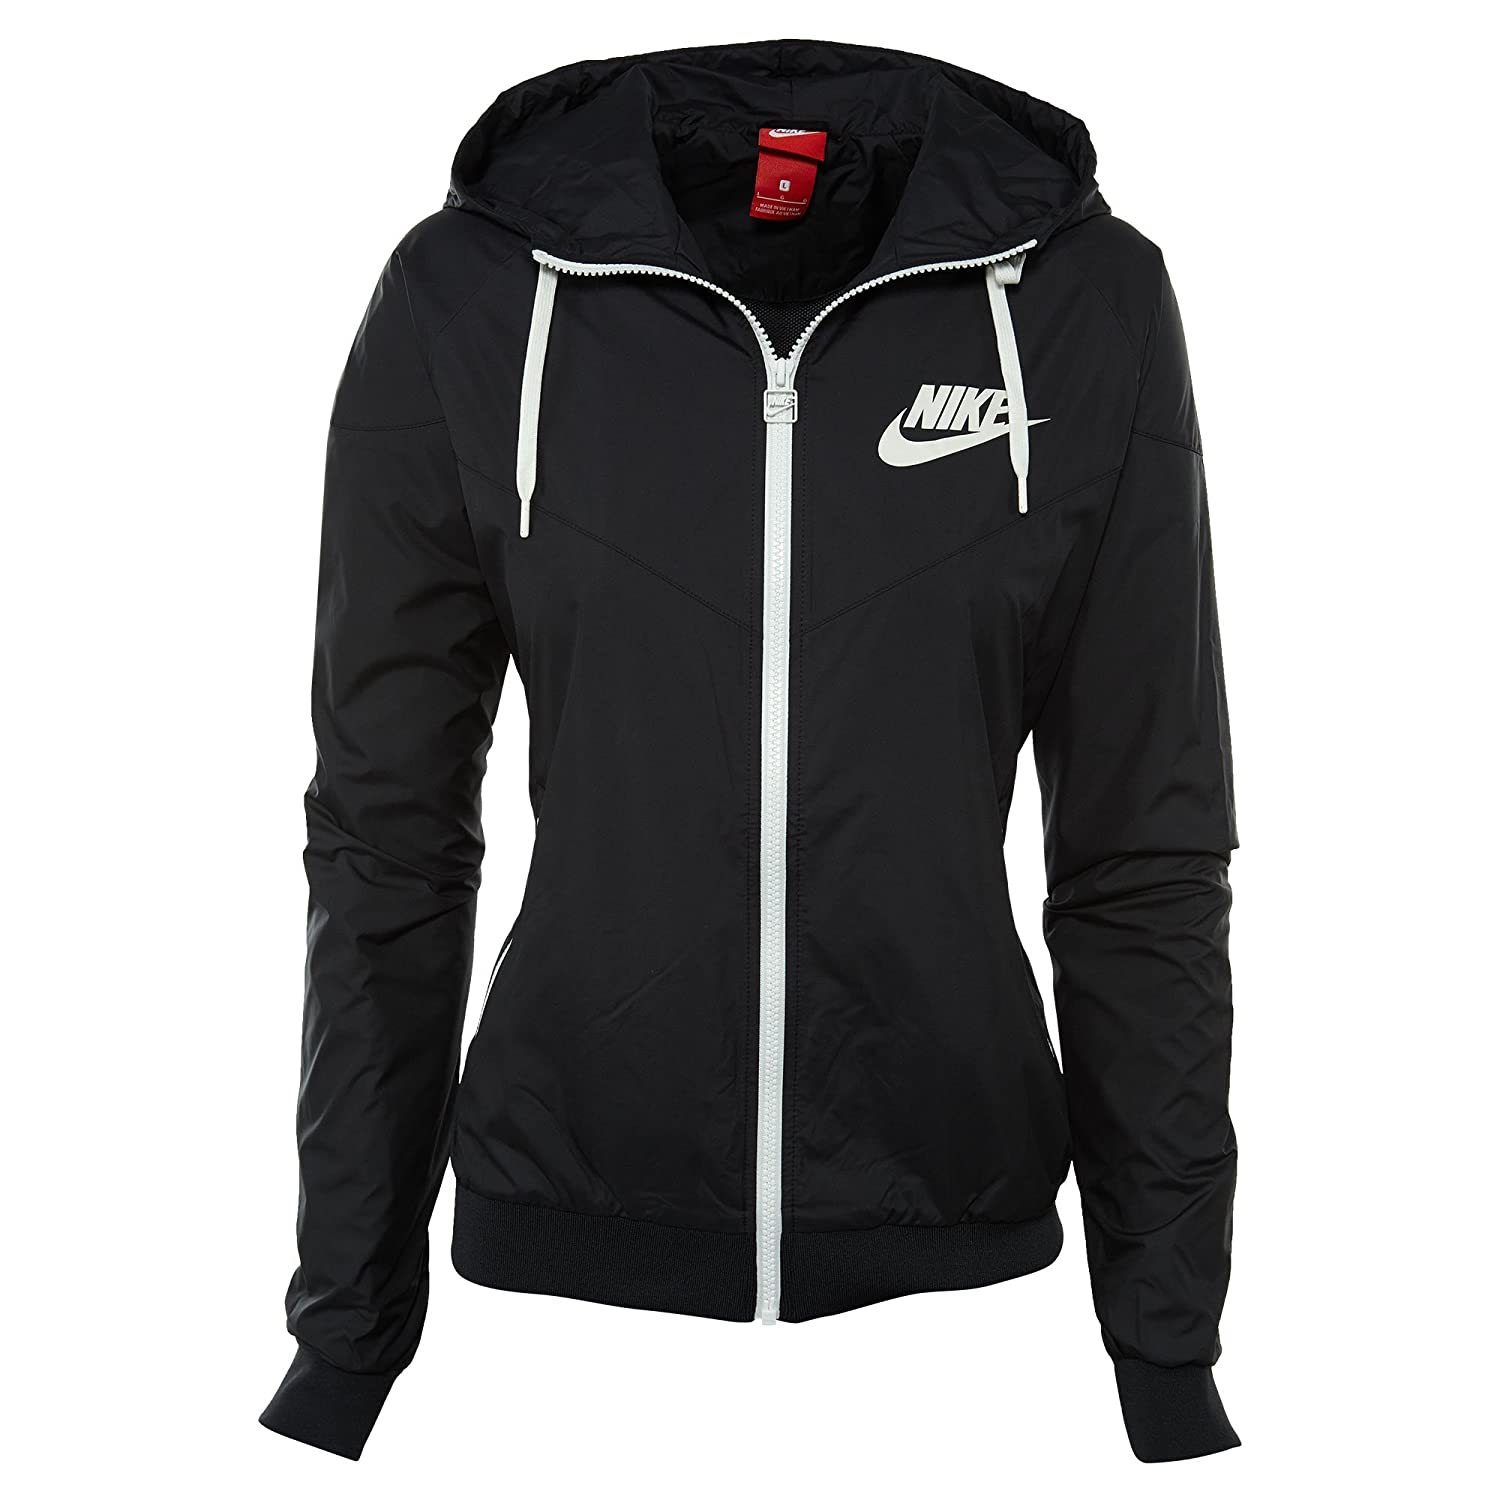 Amazon.com  Nike Sportswear Original Windrunner Jacket Womens Style    904306-011 Size   X-Small  Sports   Outdoors ceed5fa88